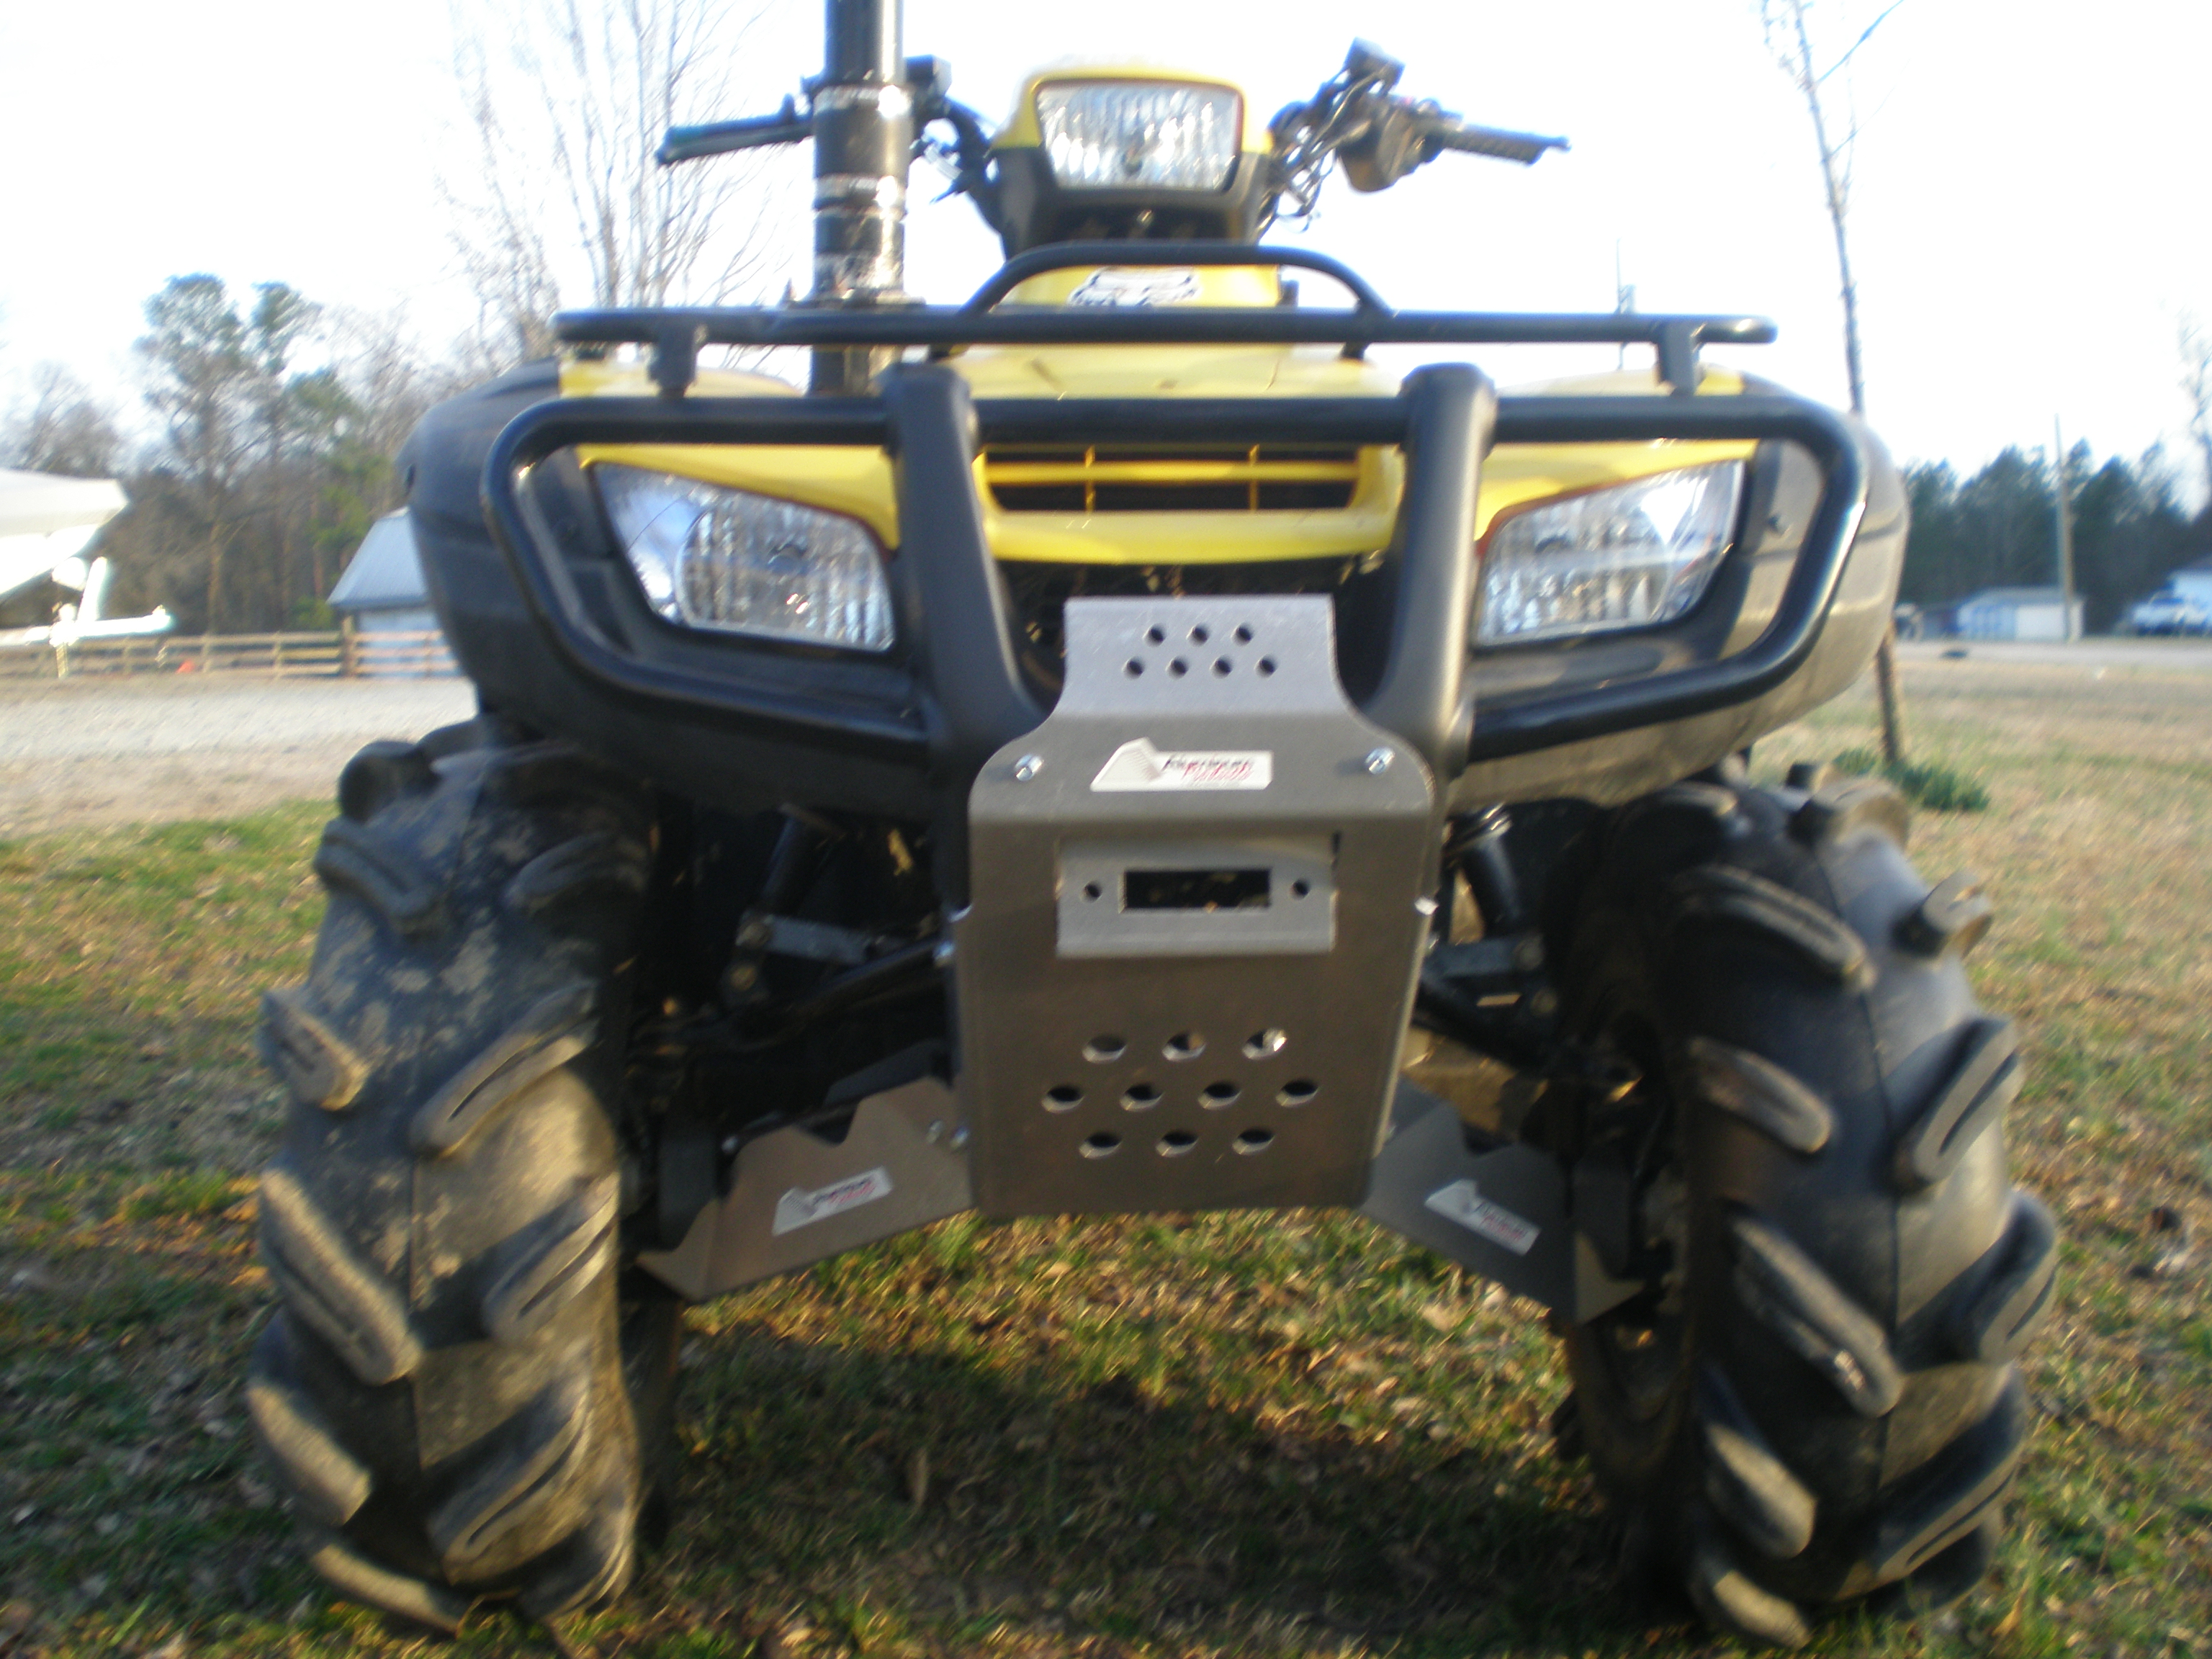 Honda Of Bend >> front axle and brush guards - Honda Foreman Forums : Rubicon, Rincon, Rancher and Recon Forum